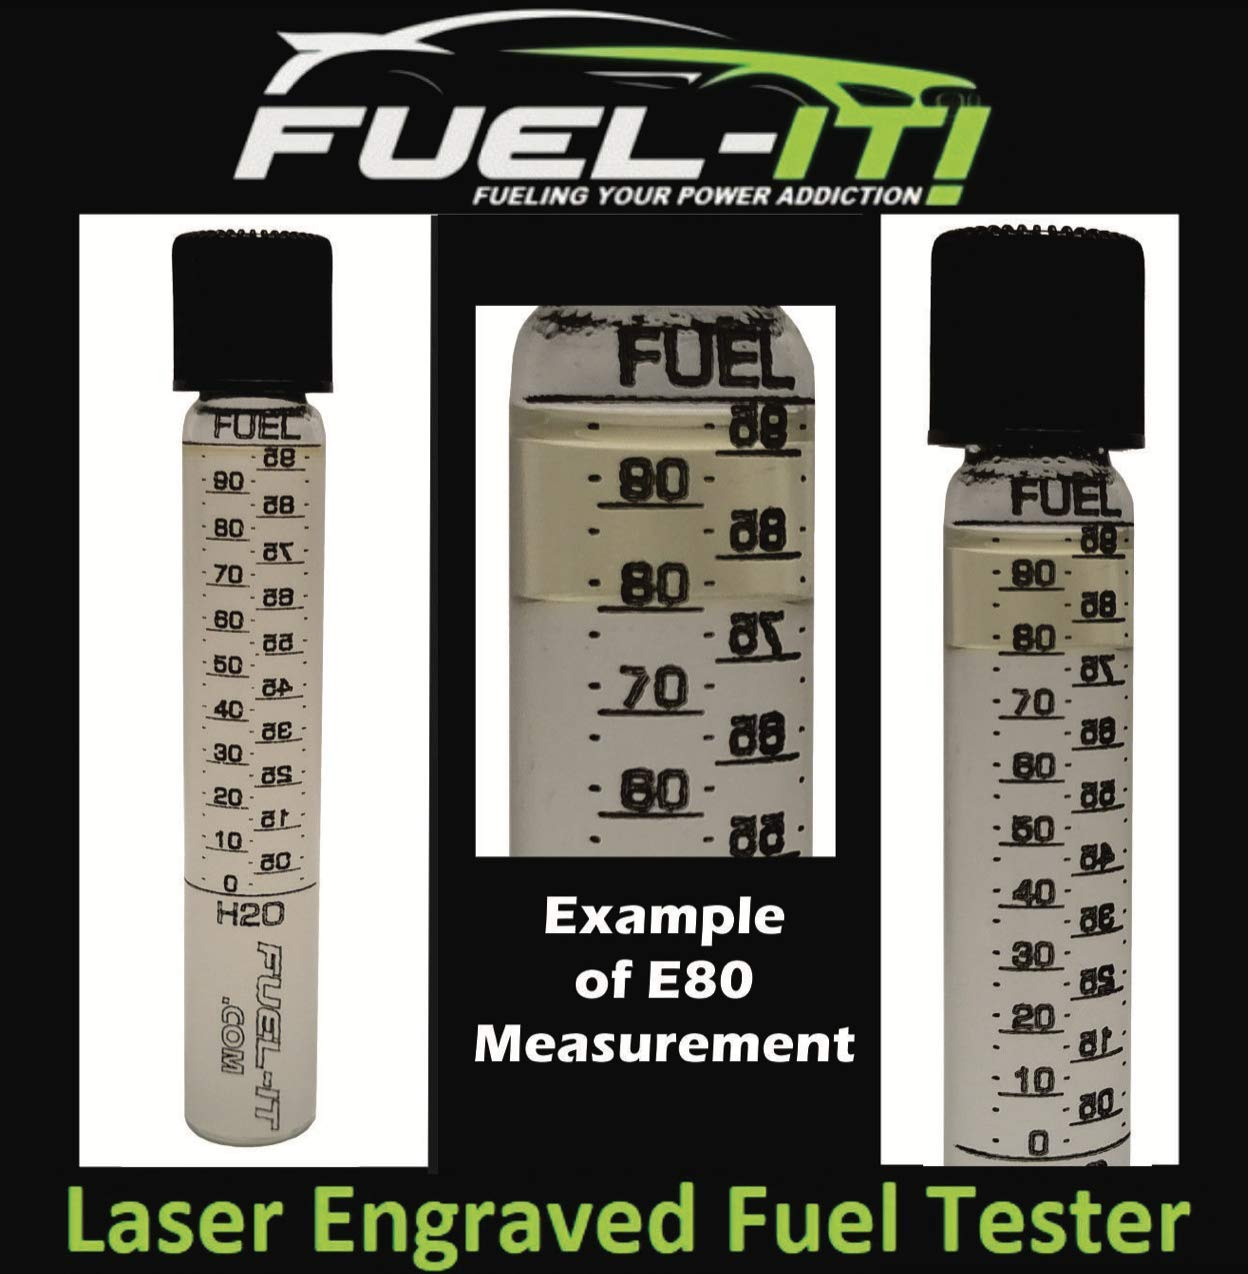 Glass Laser Etched Ethanol Content Fuel Tester for Ethanol, E85, Gasoline by Fuel-It! (Image #2)